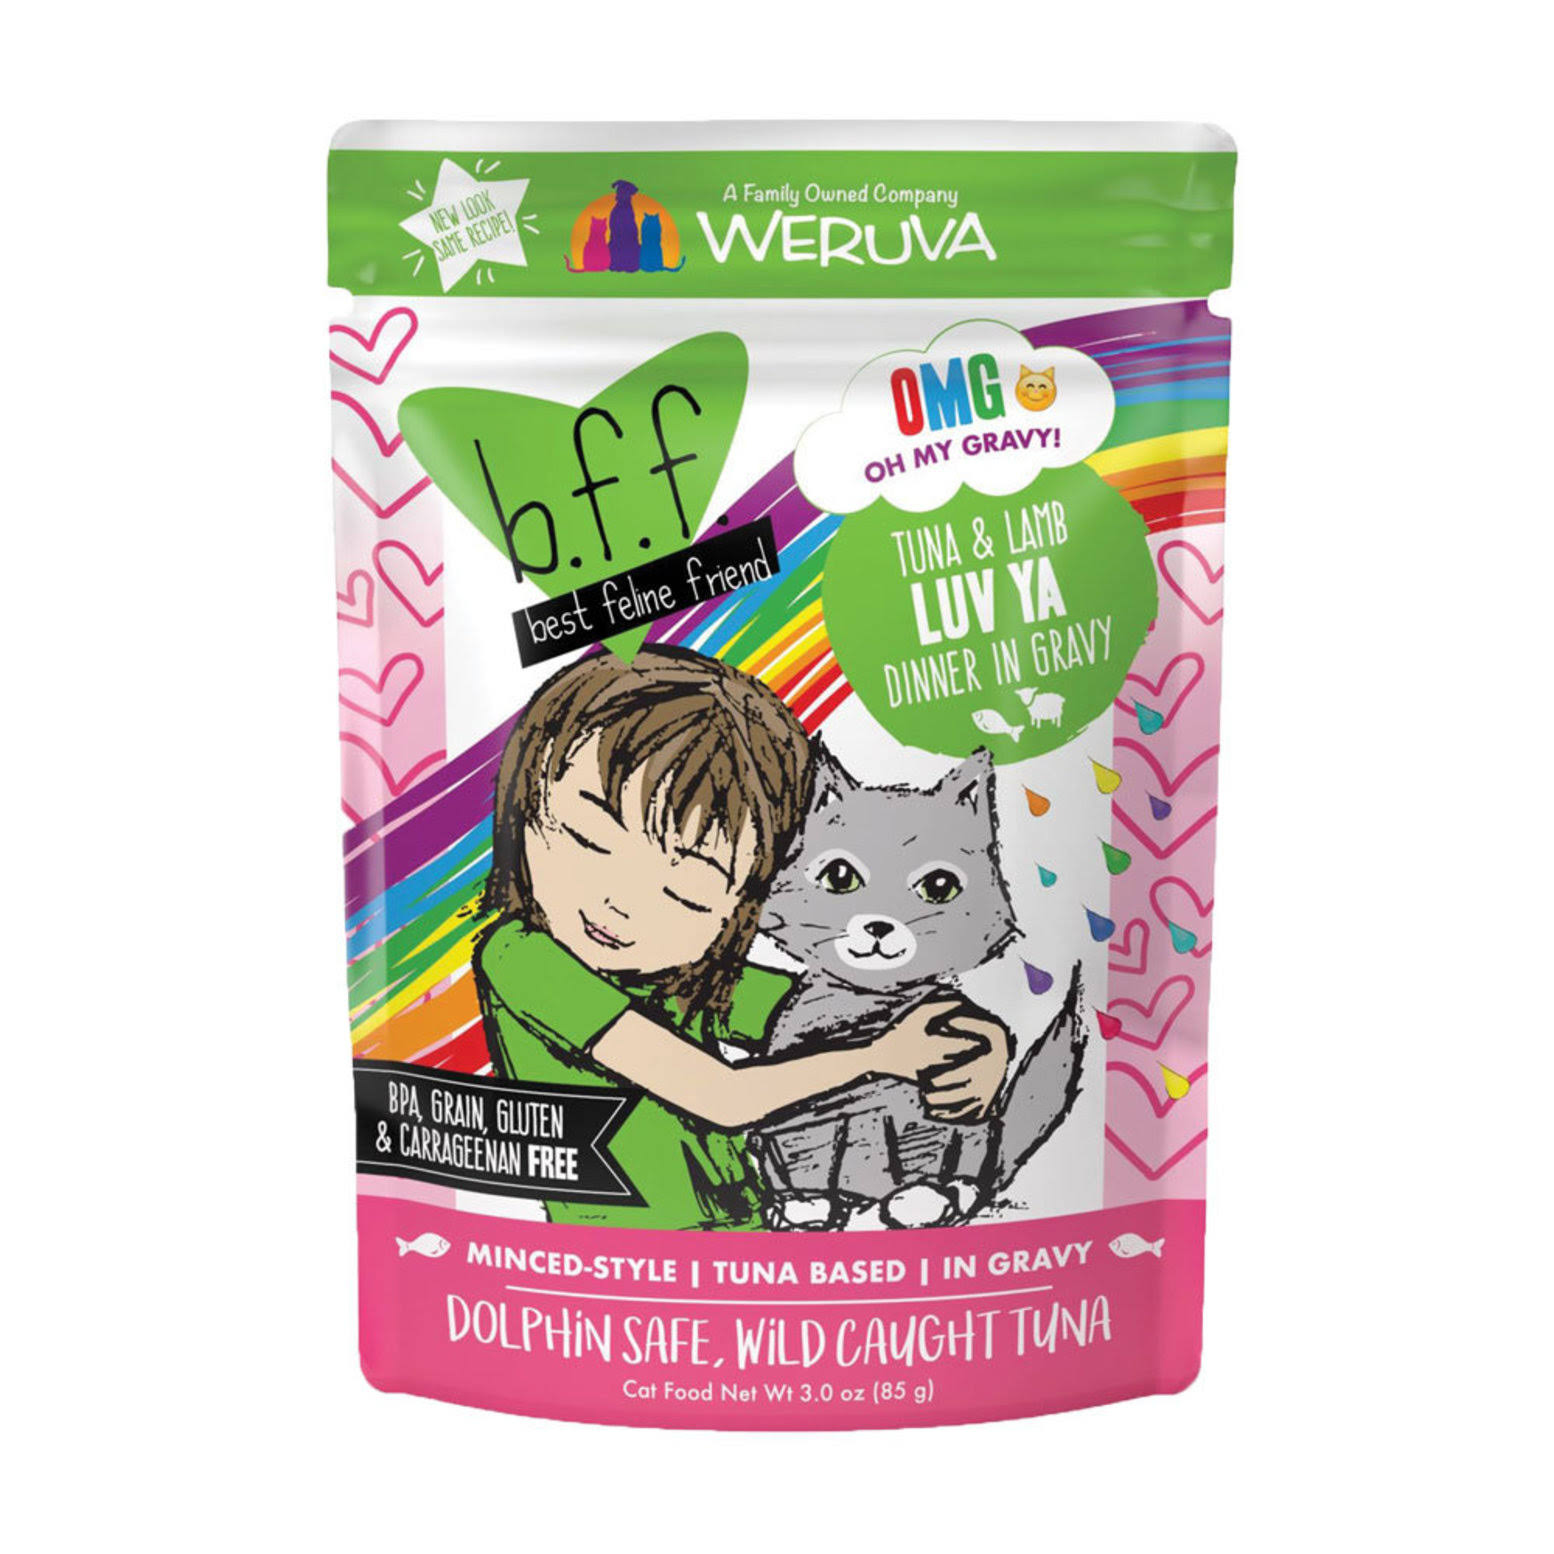 BFF Adult Cat Wet Food - Tuna & Lamb Luv-Ya, 85g